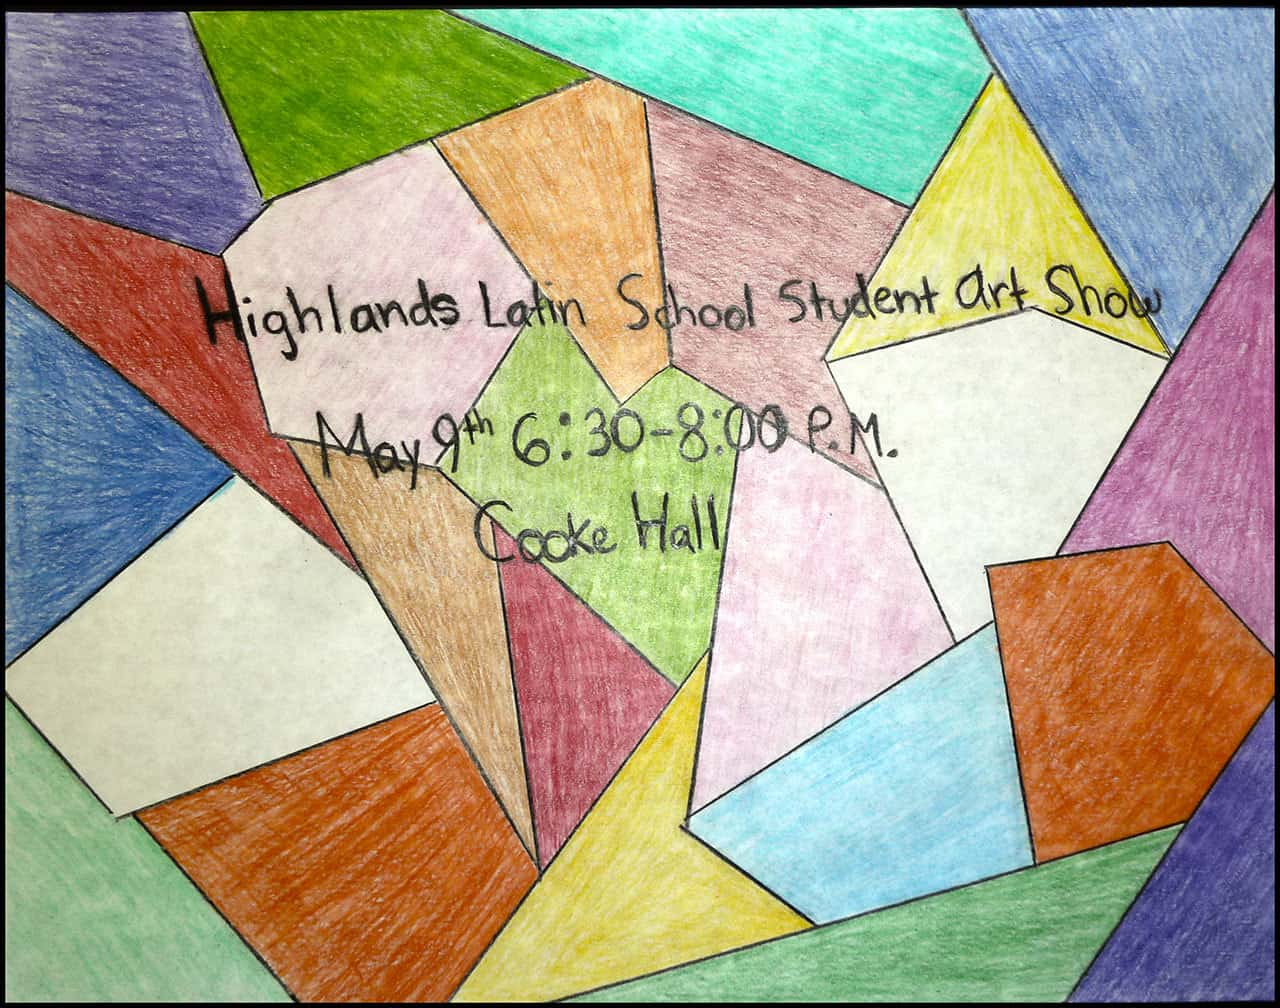 SM Art Show May 9th 6:30 PM Cooke Hall